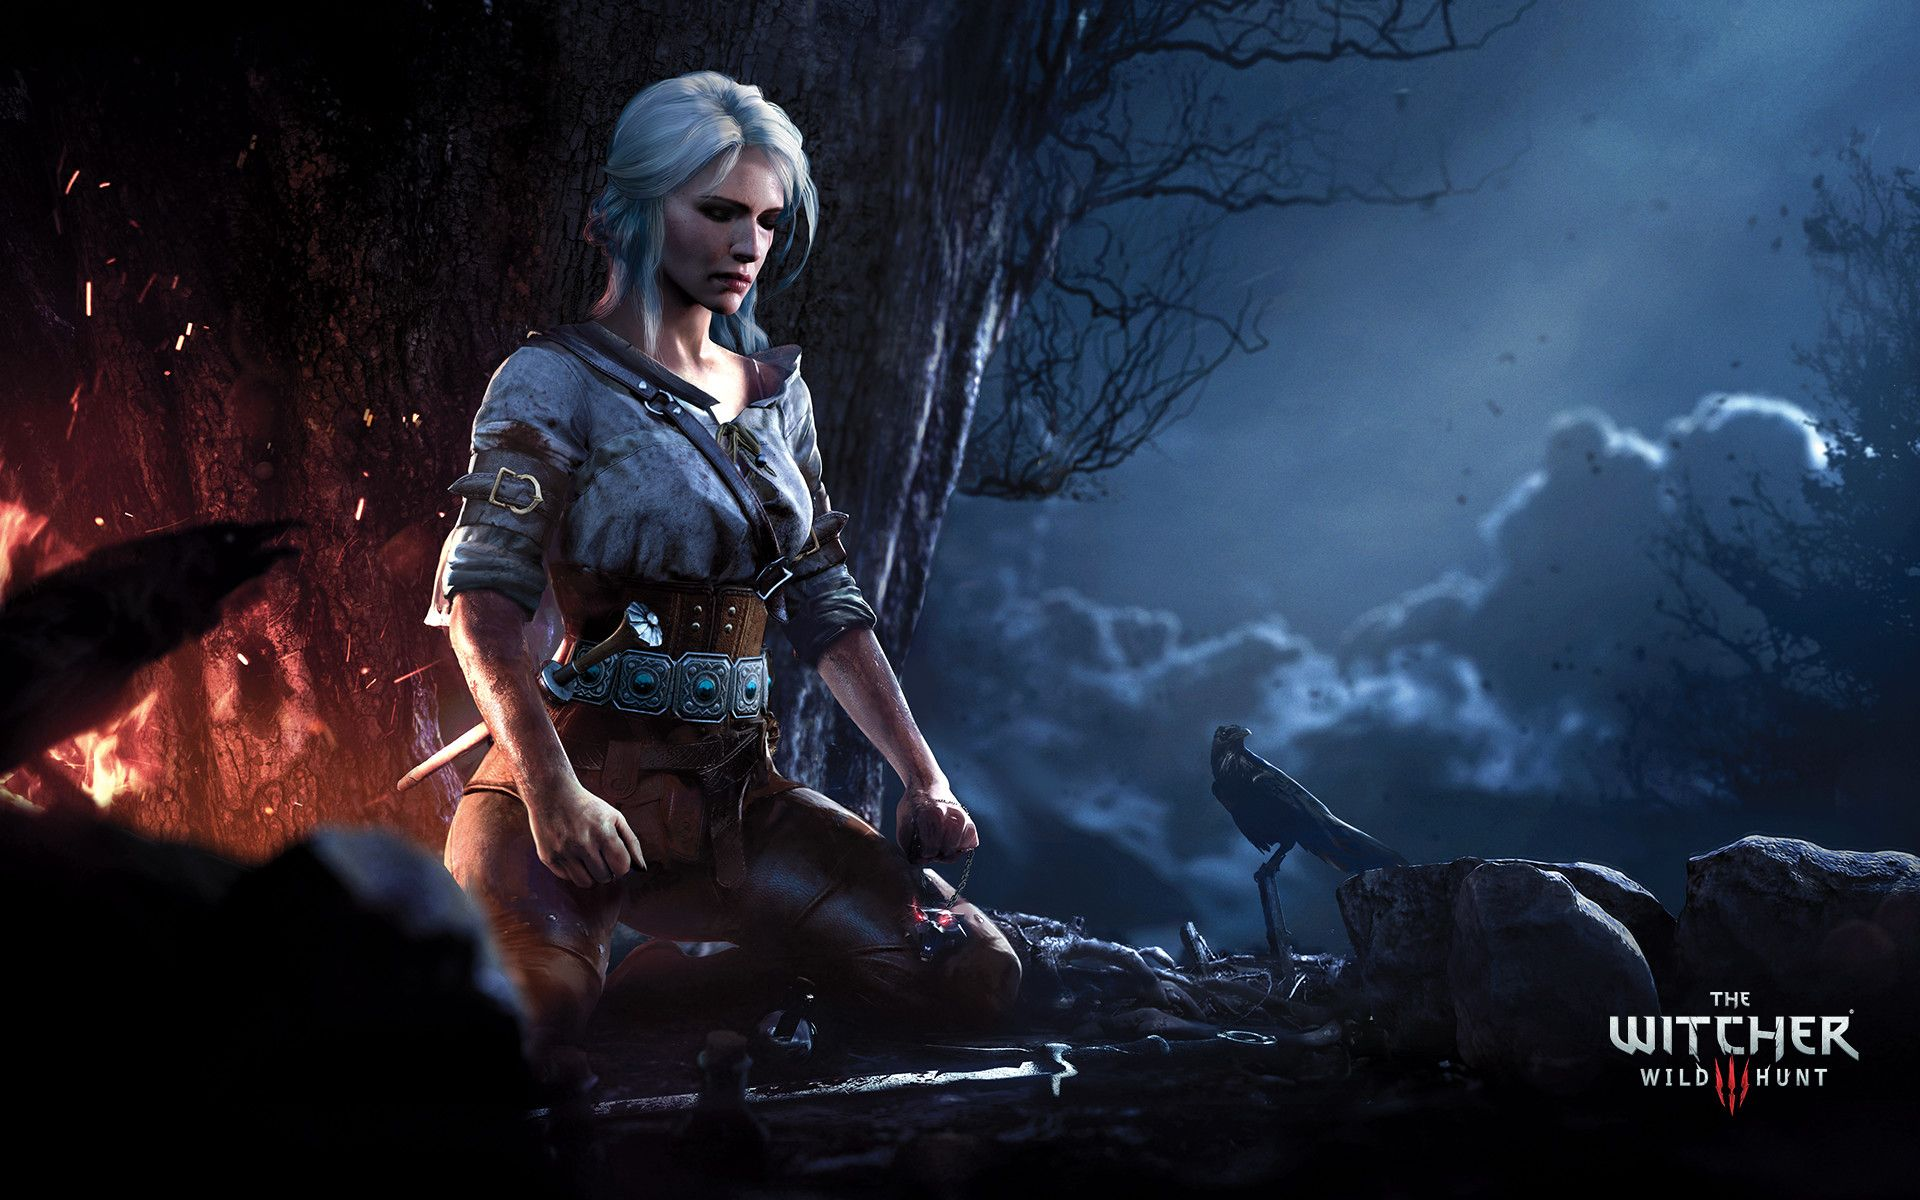 Pin On Medieval Fantasy Characters Female Ciri witcher 3 hd games artwork